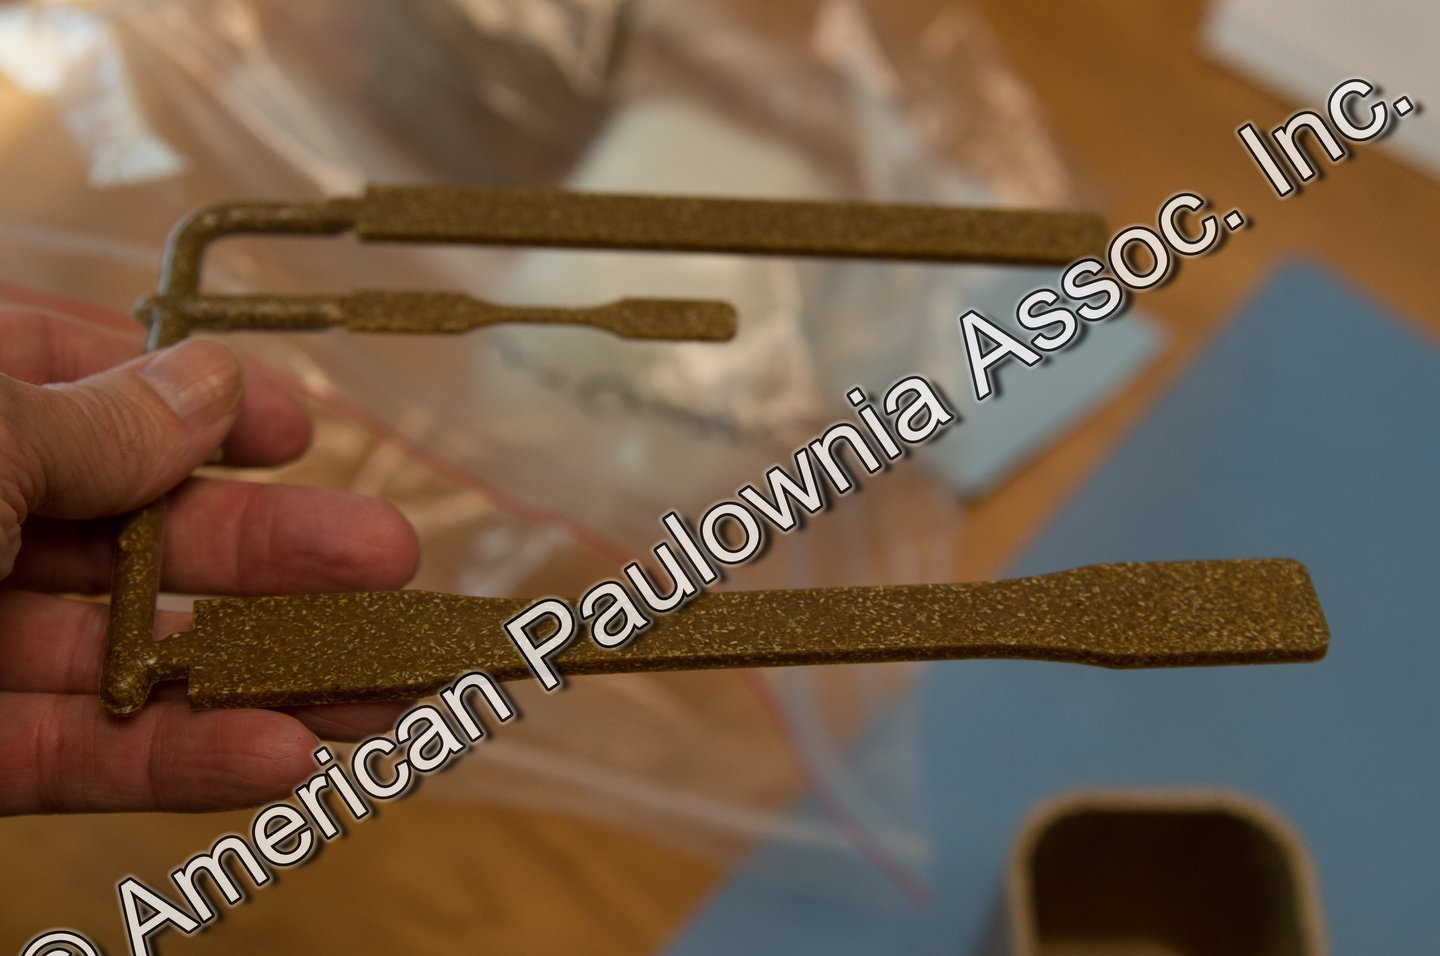 Plasticized Paulownia wood flour test strips